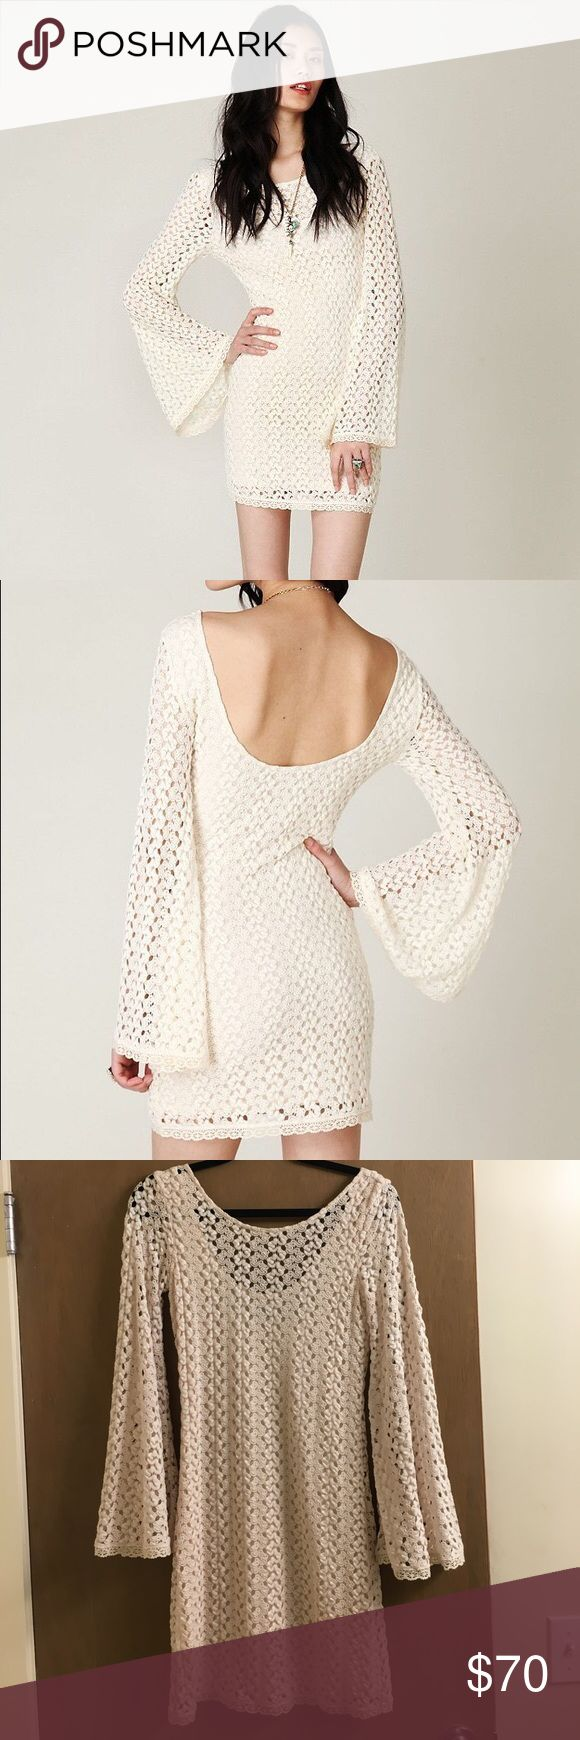 Free People crochet dress A crochet form fitting dress with bell sleeves that gives off a 70's feel and is perfect for a comfortable night out Free People Dresses Mini